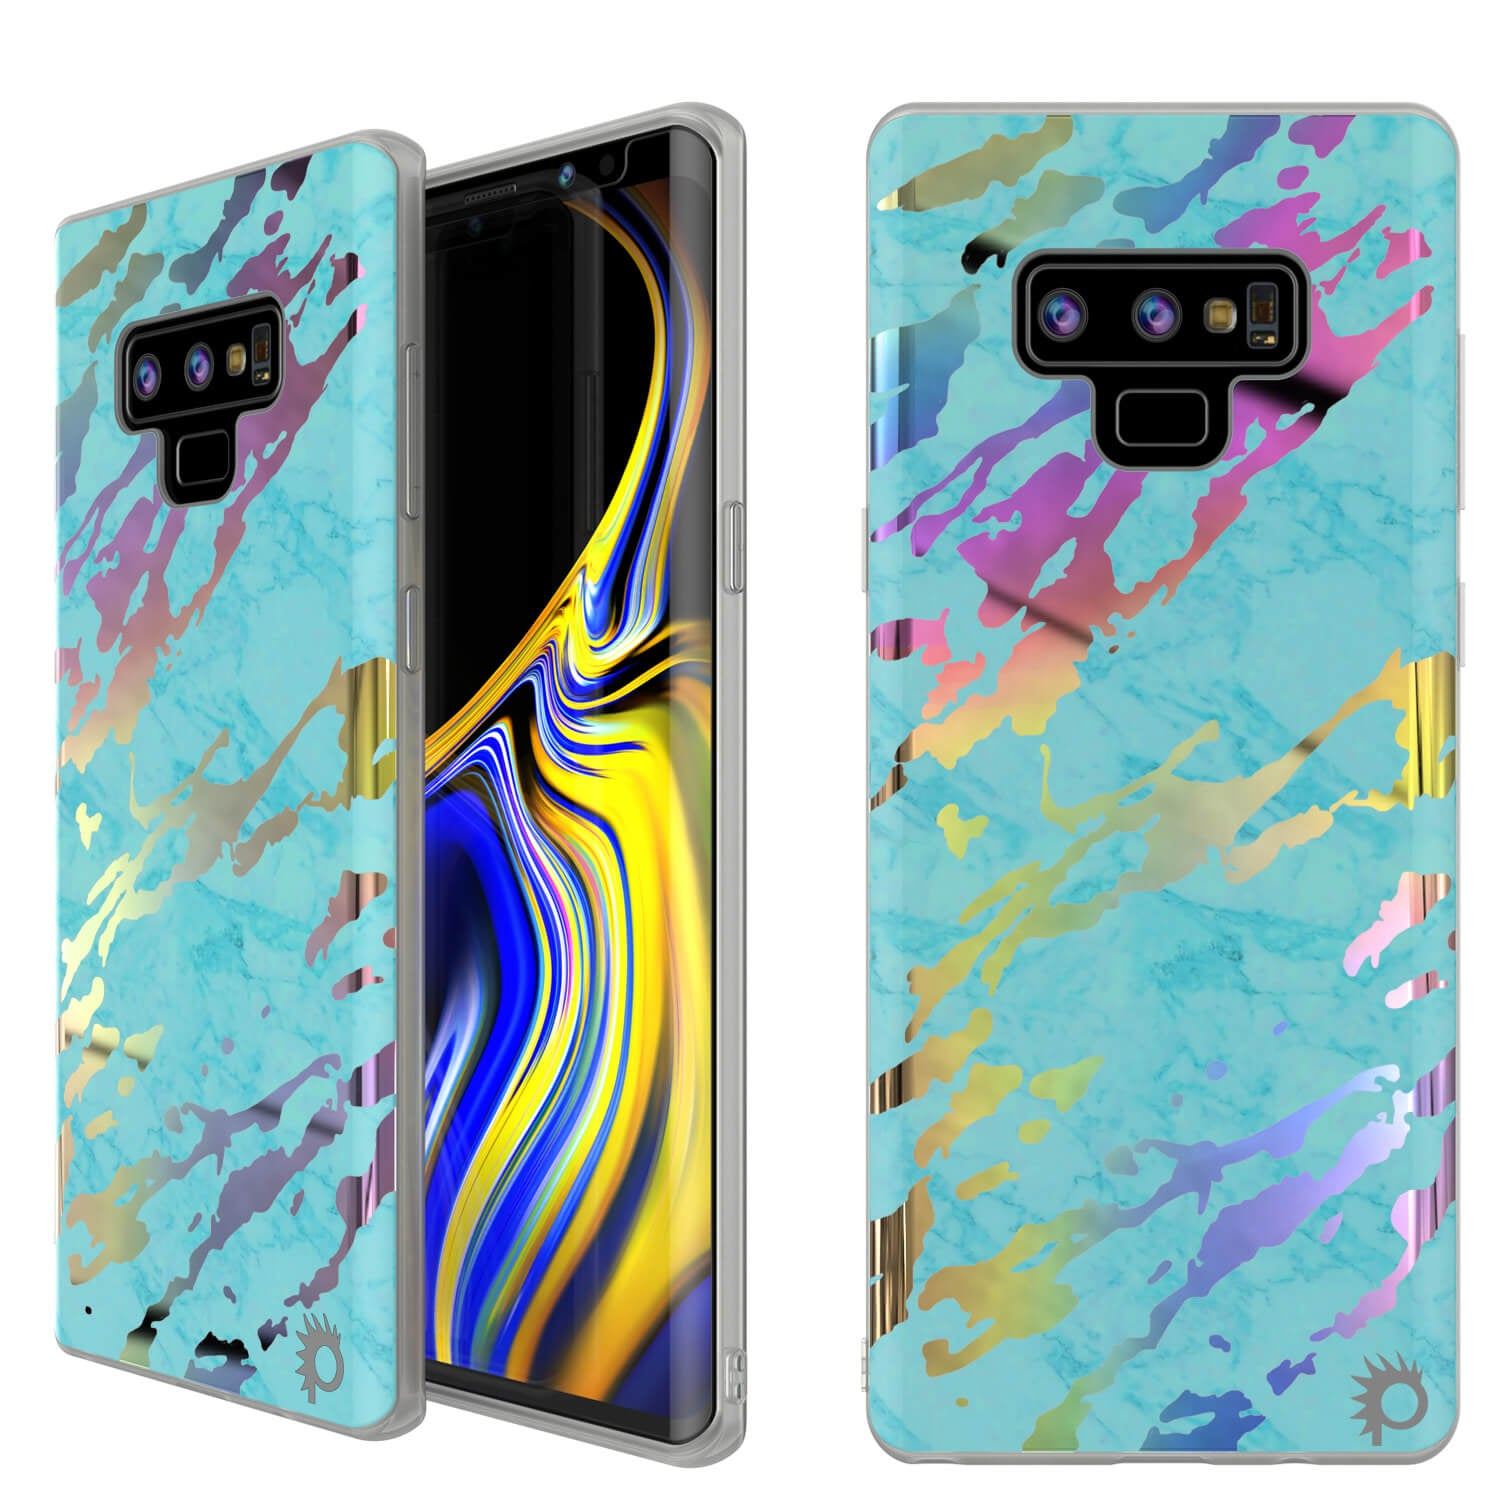 Galaxy Note 9 Full Body W/ Screen Protector Marble Case [Teal Onyx]